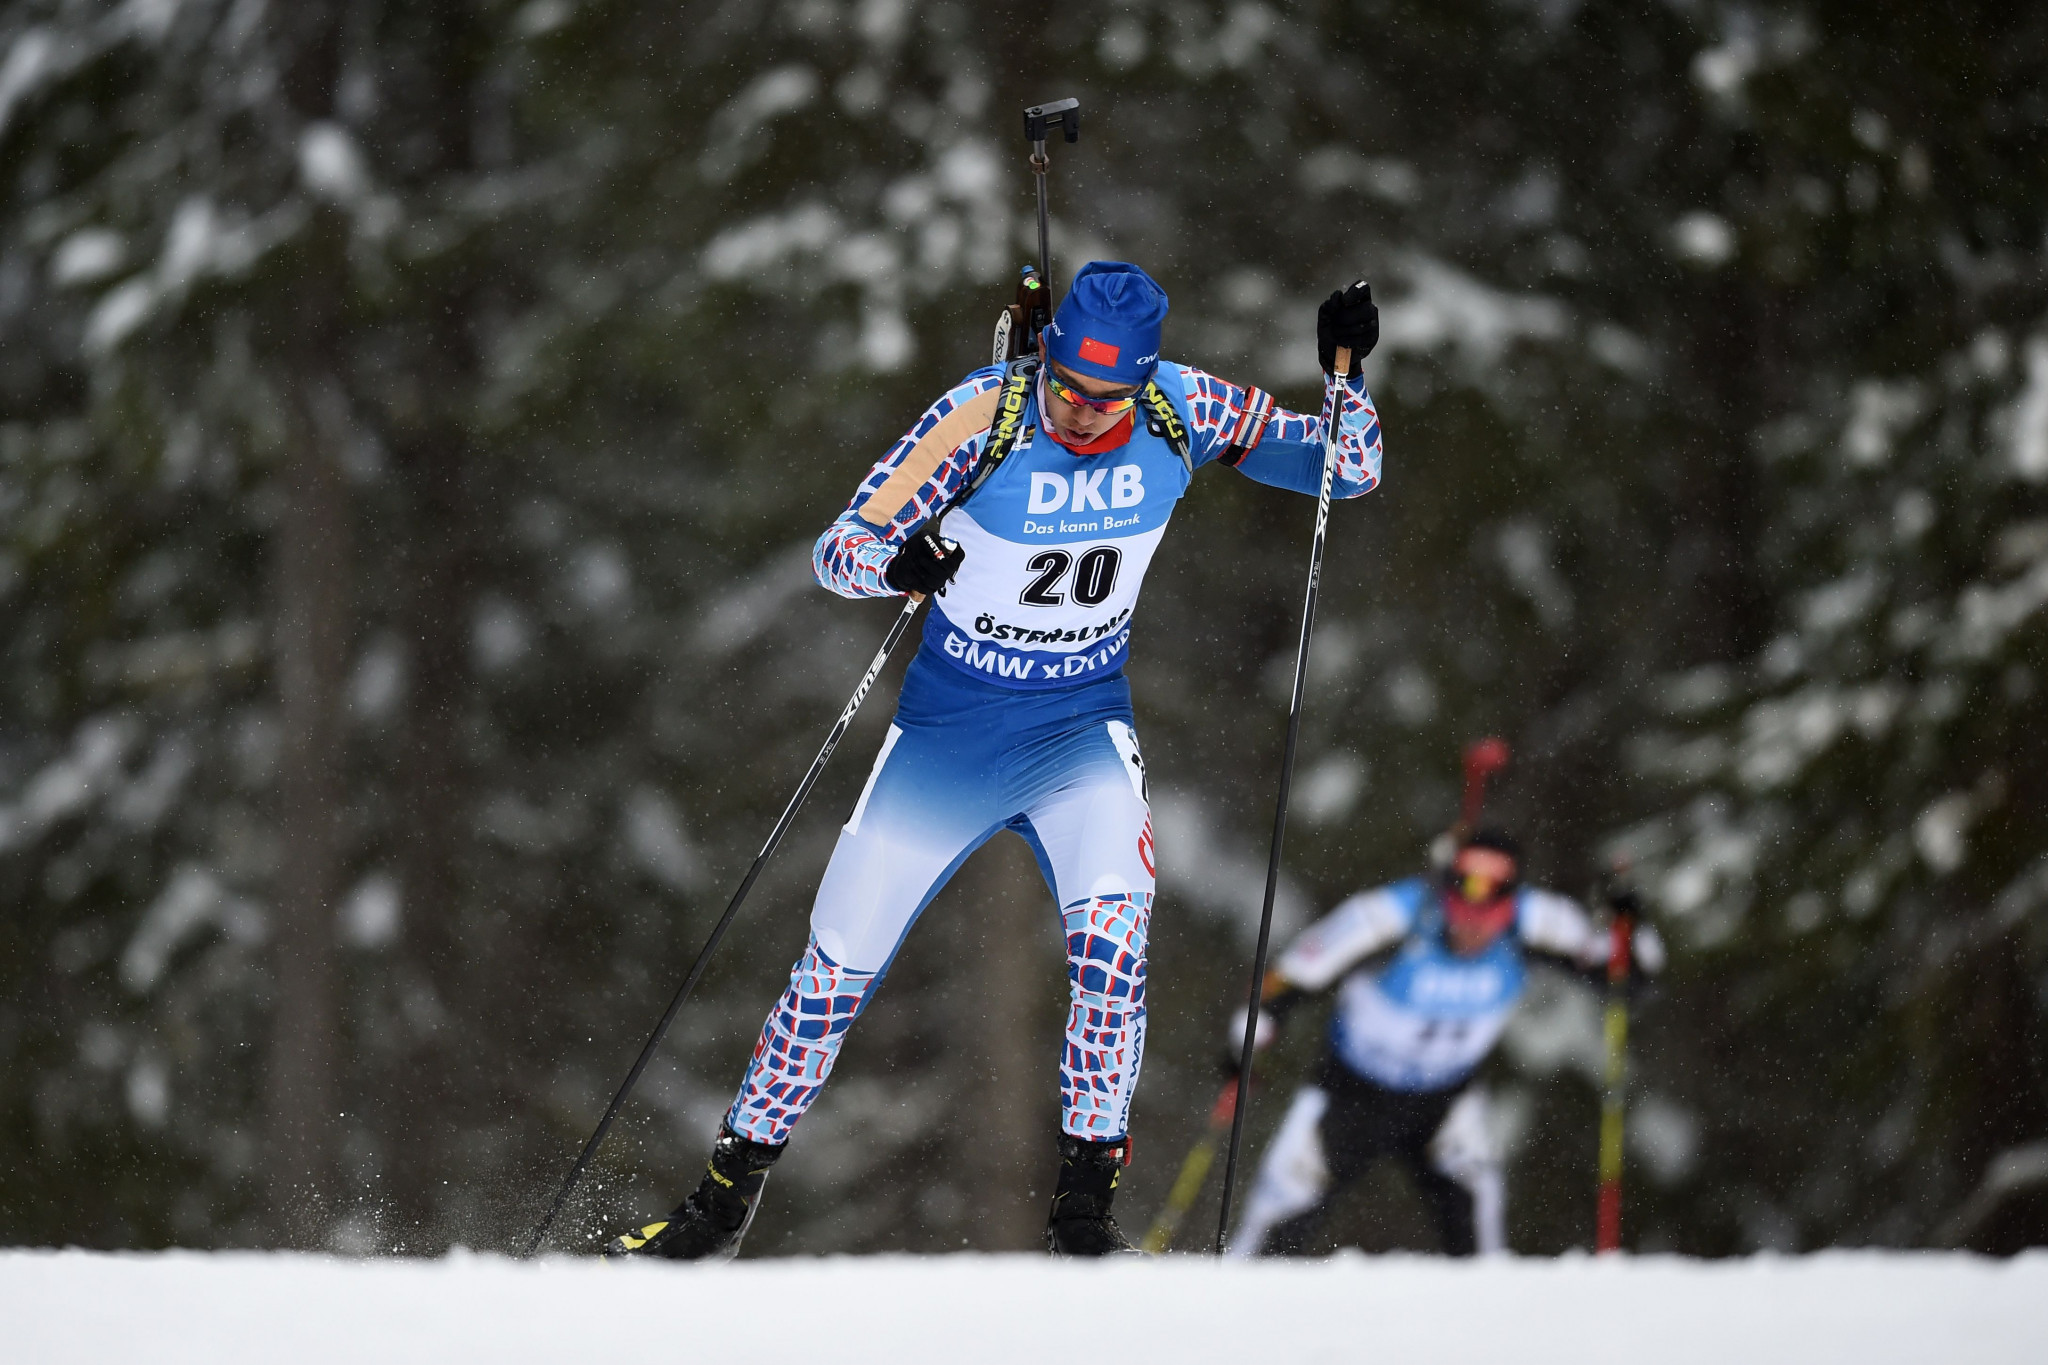 IBU President targeting Beijing 2022 as opportunity to enhance growth of biathlon